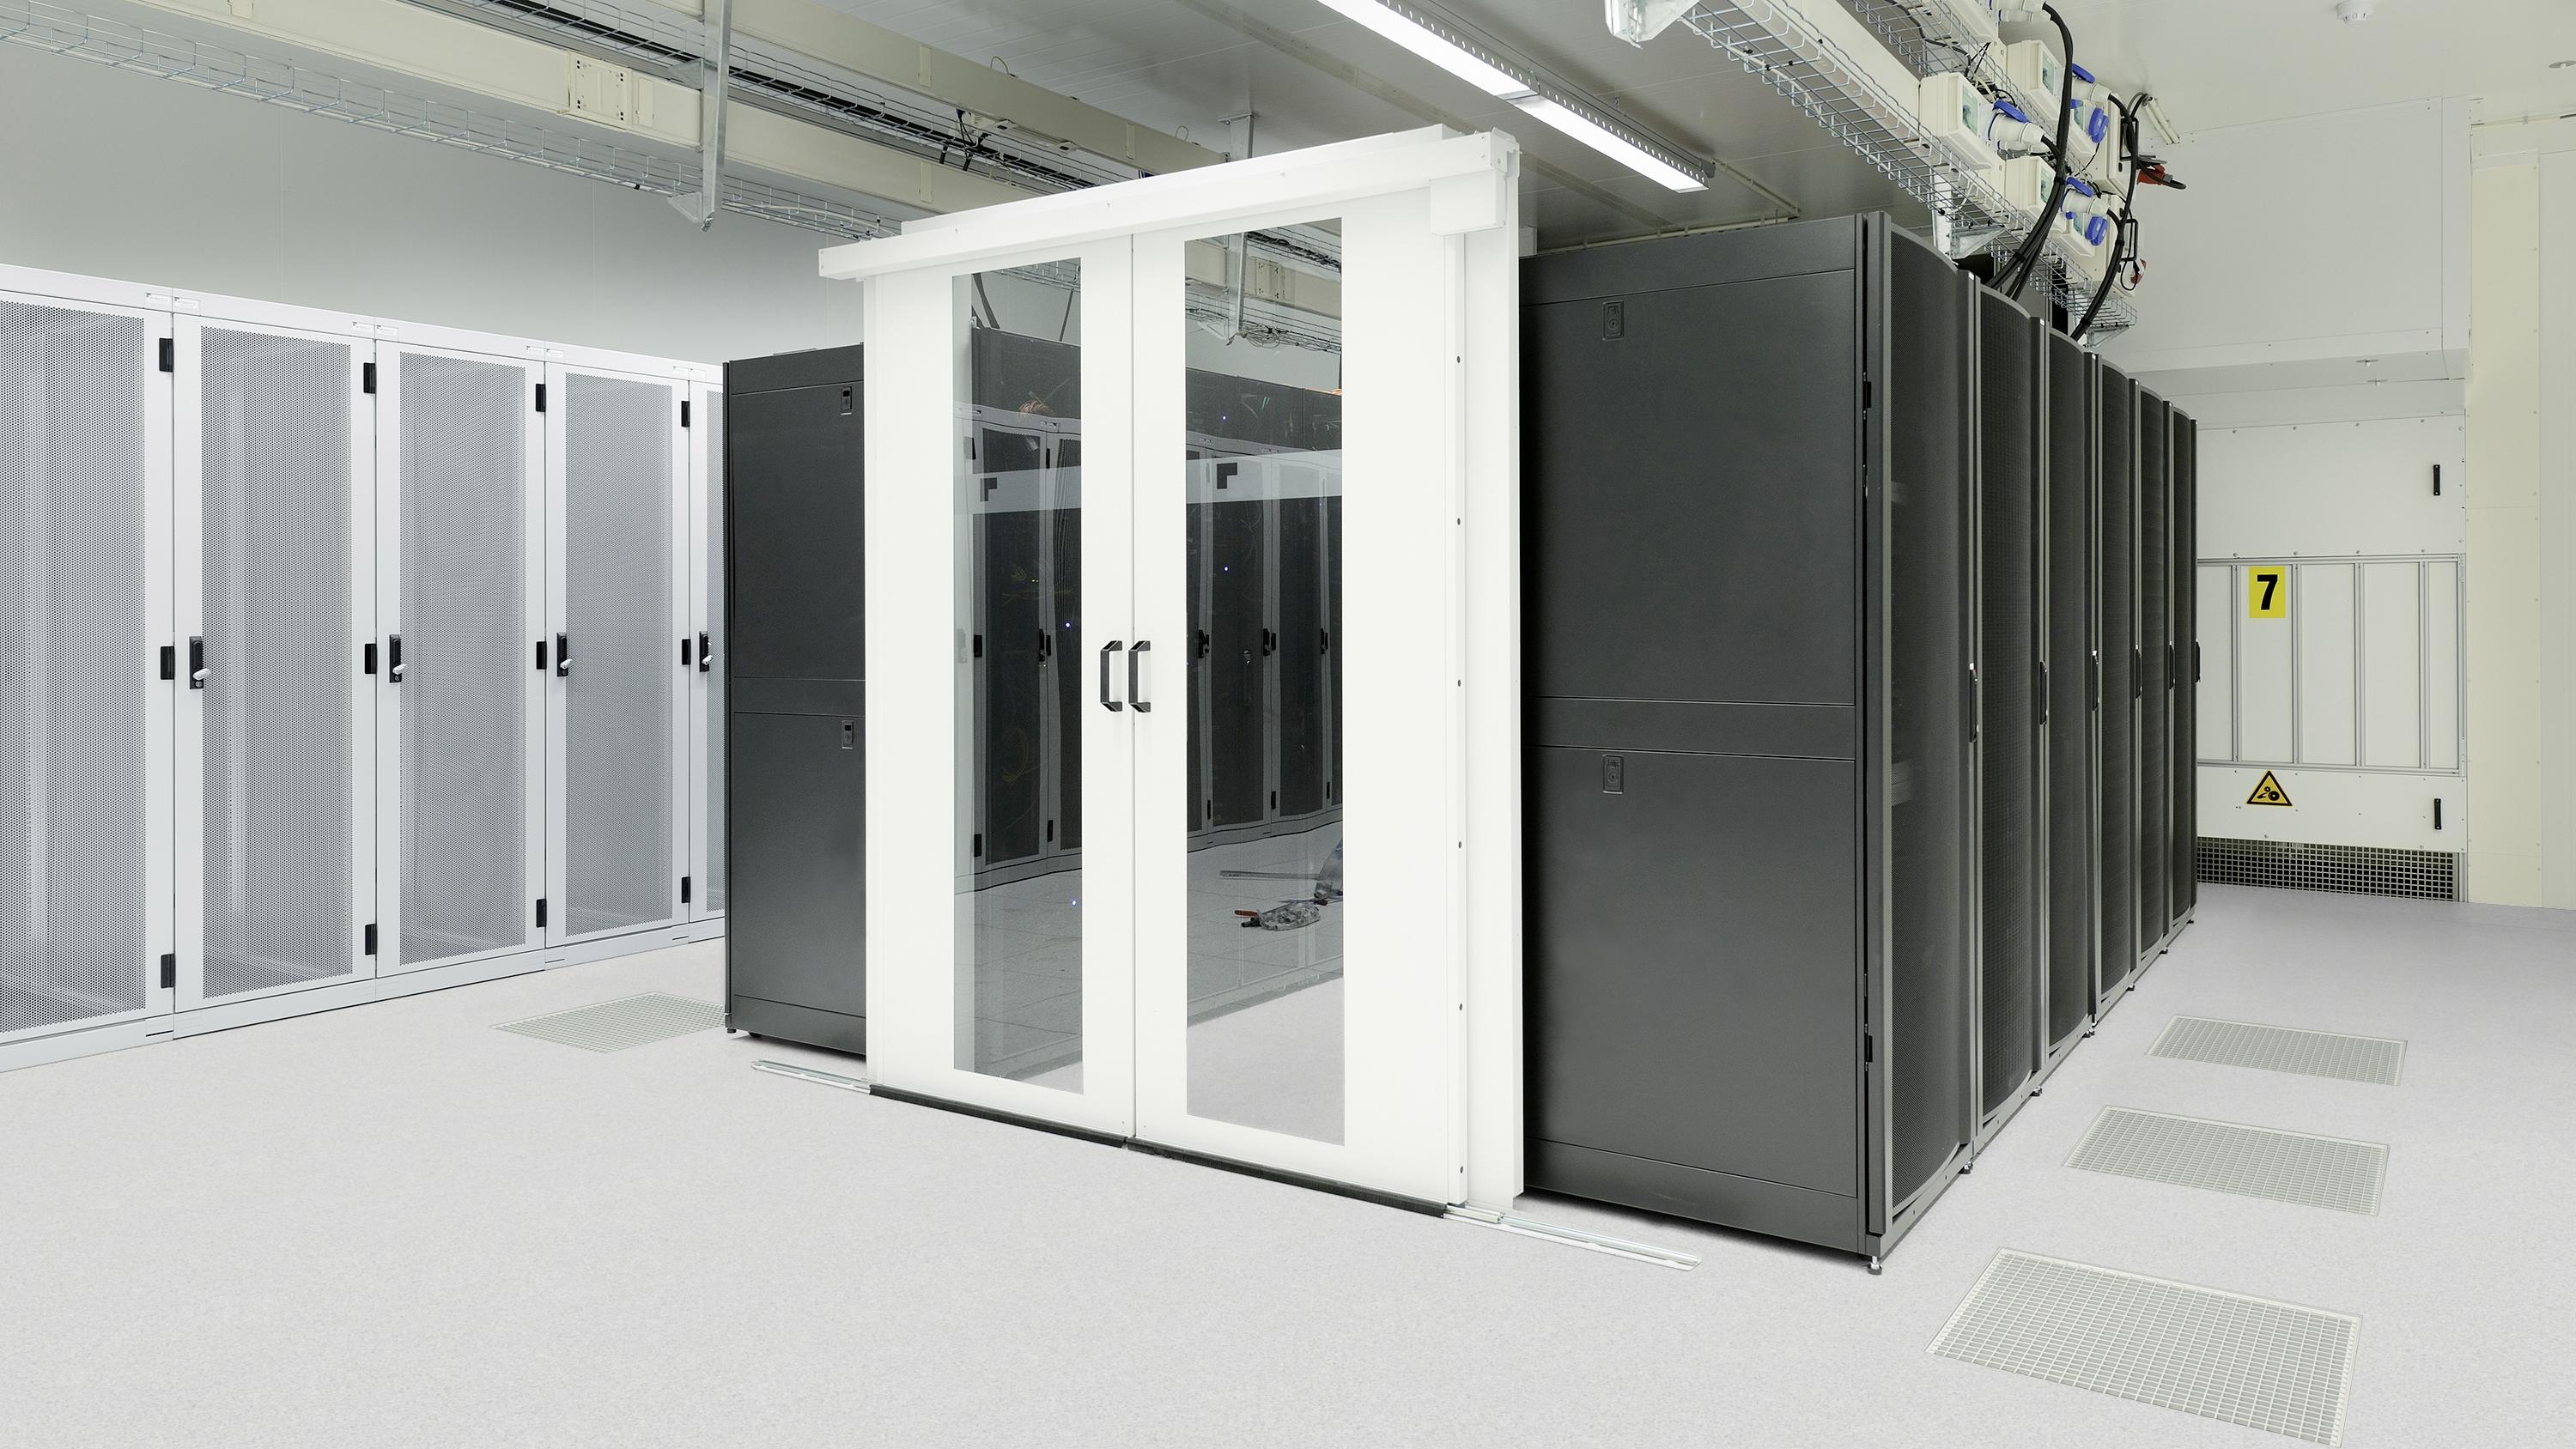 Server room floors - Sustainability - Workplace, business & office ...